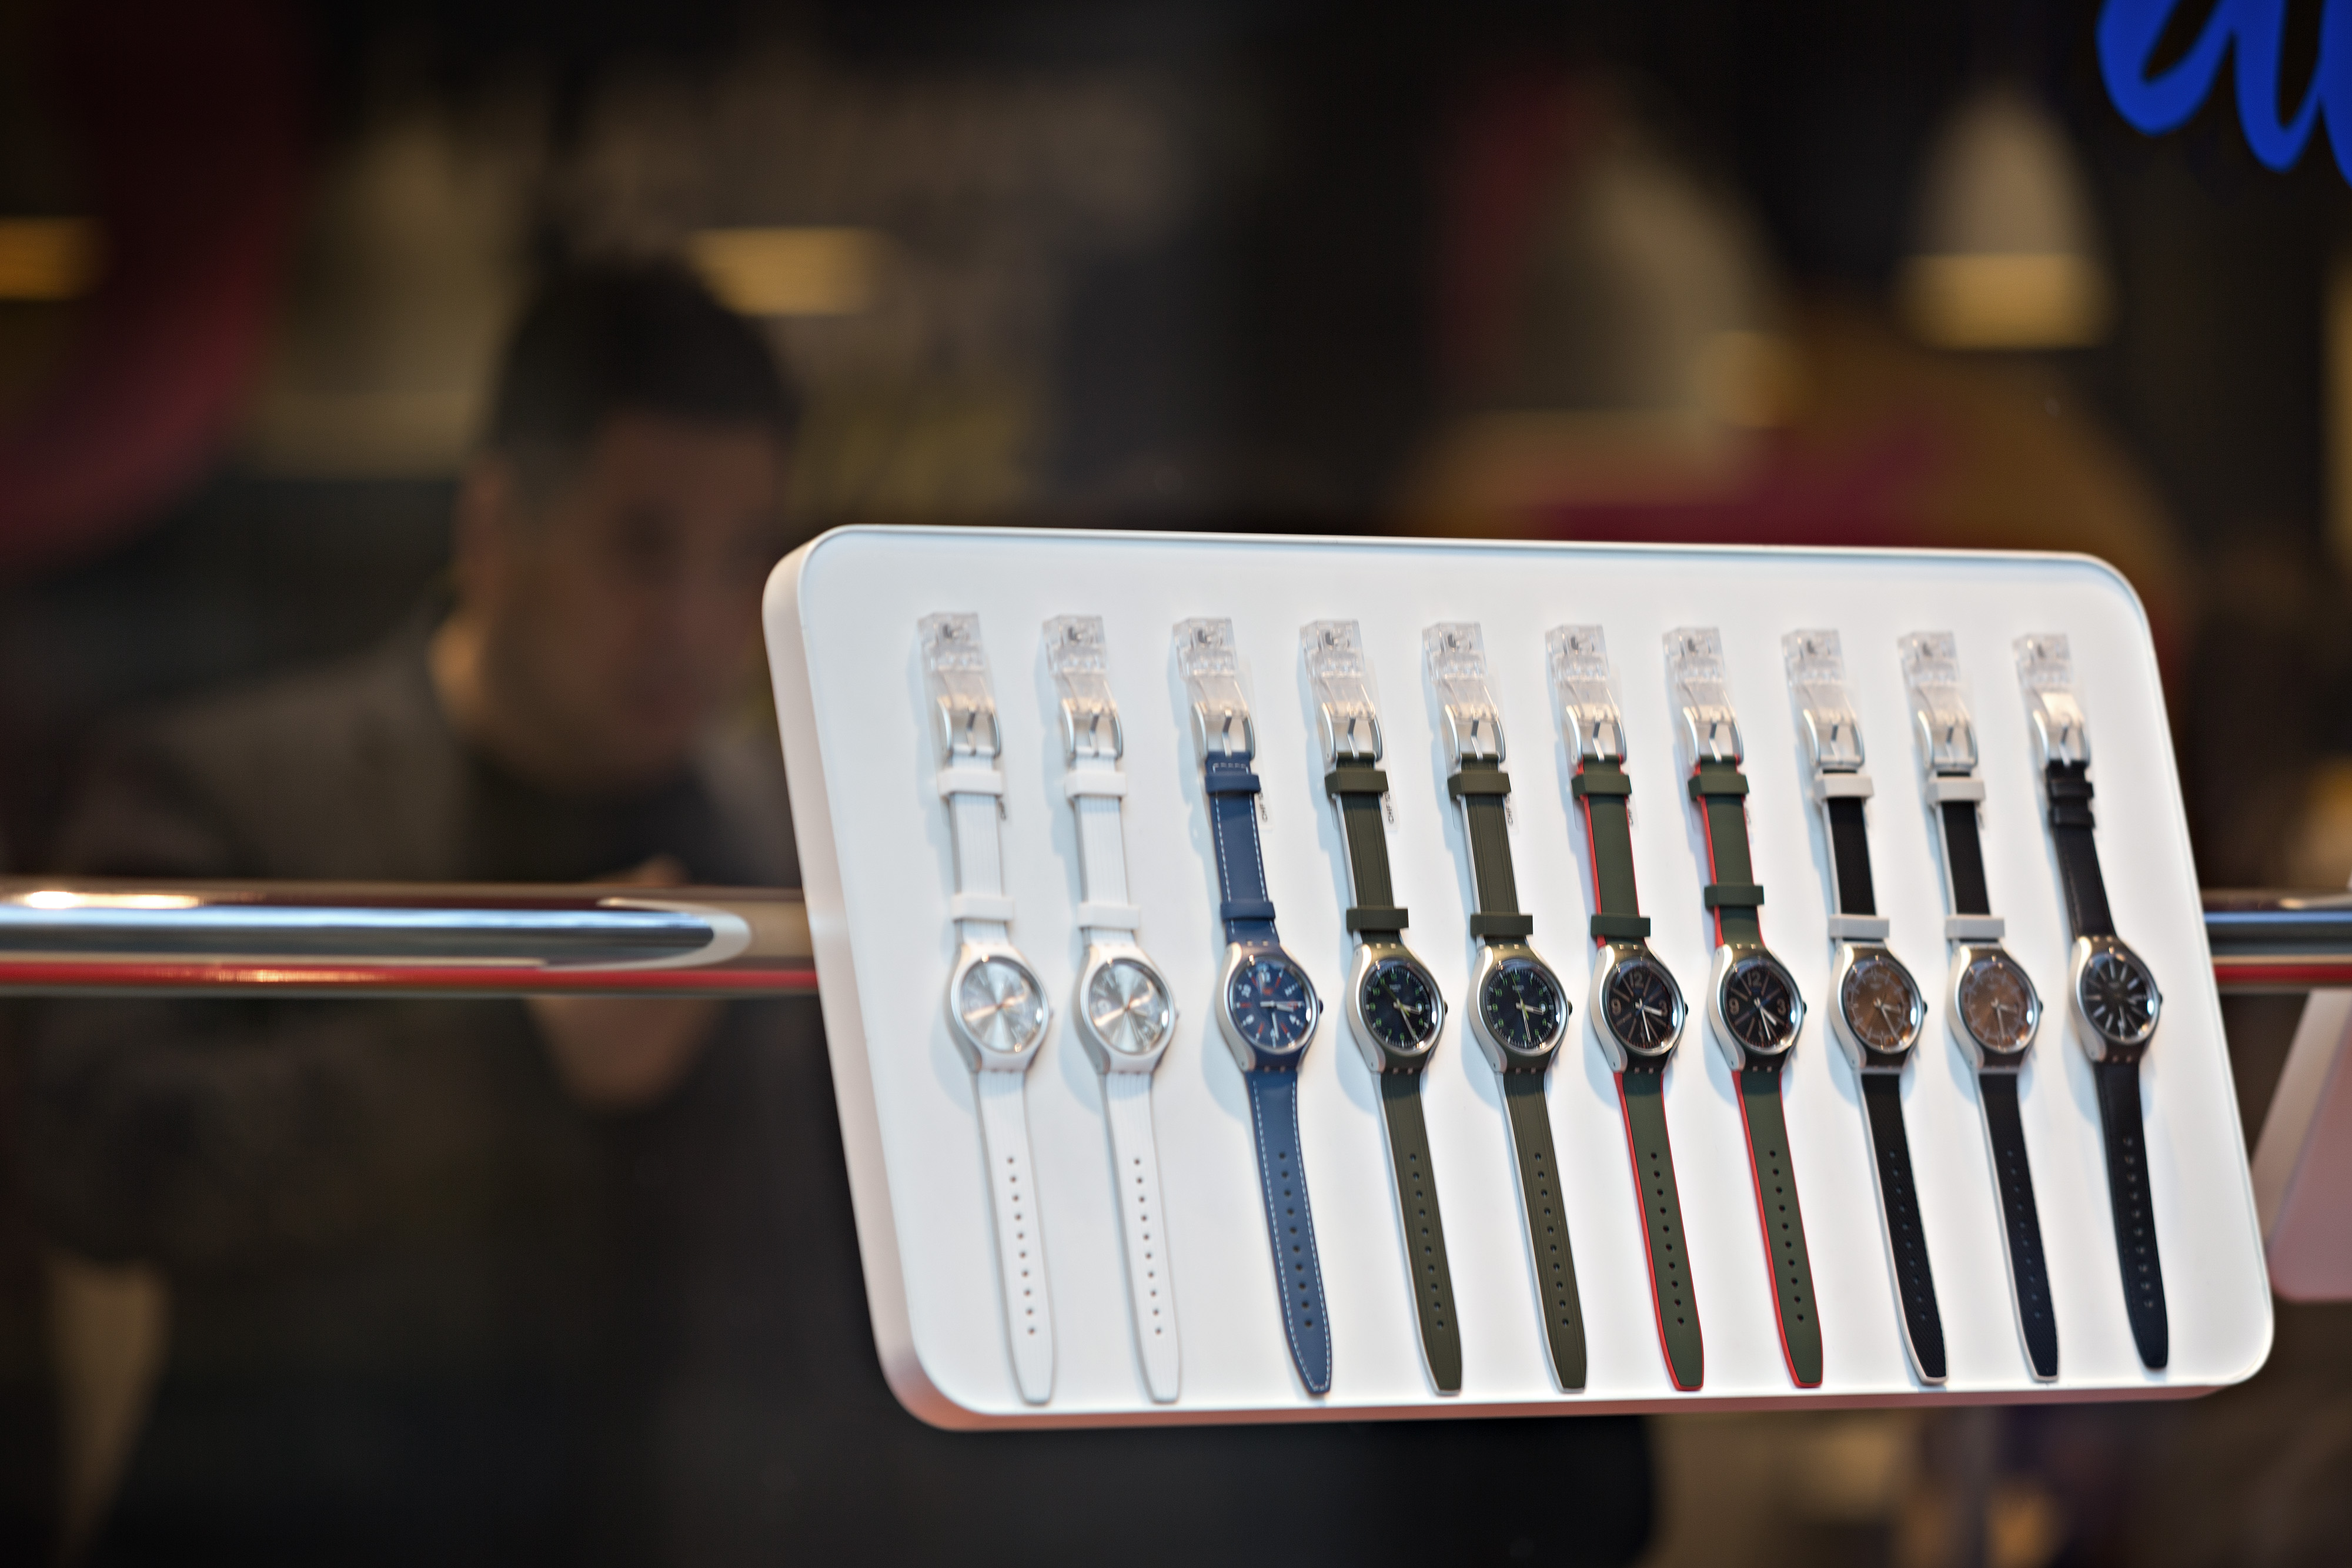 Wrist watches sit on display in the window of a Swatch store in Zurich